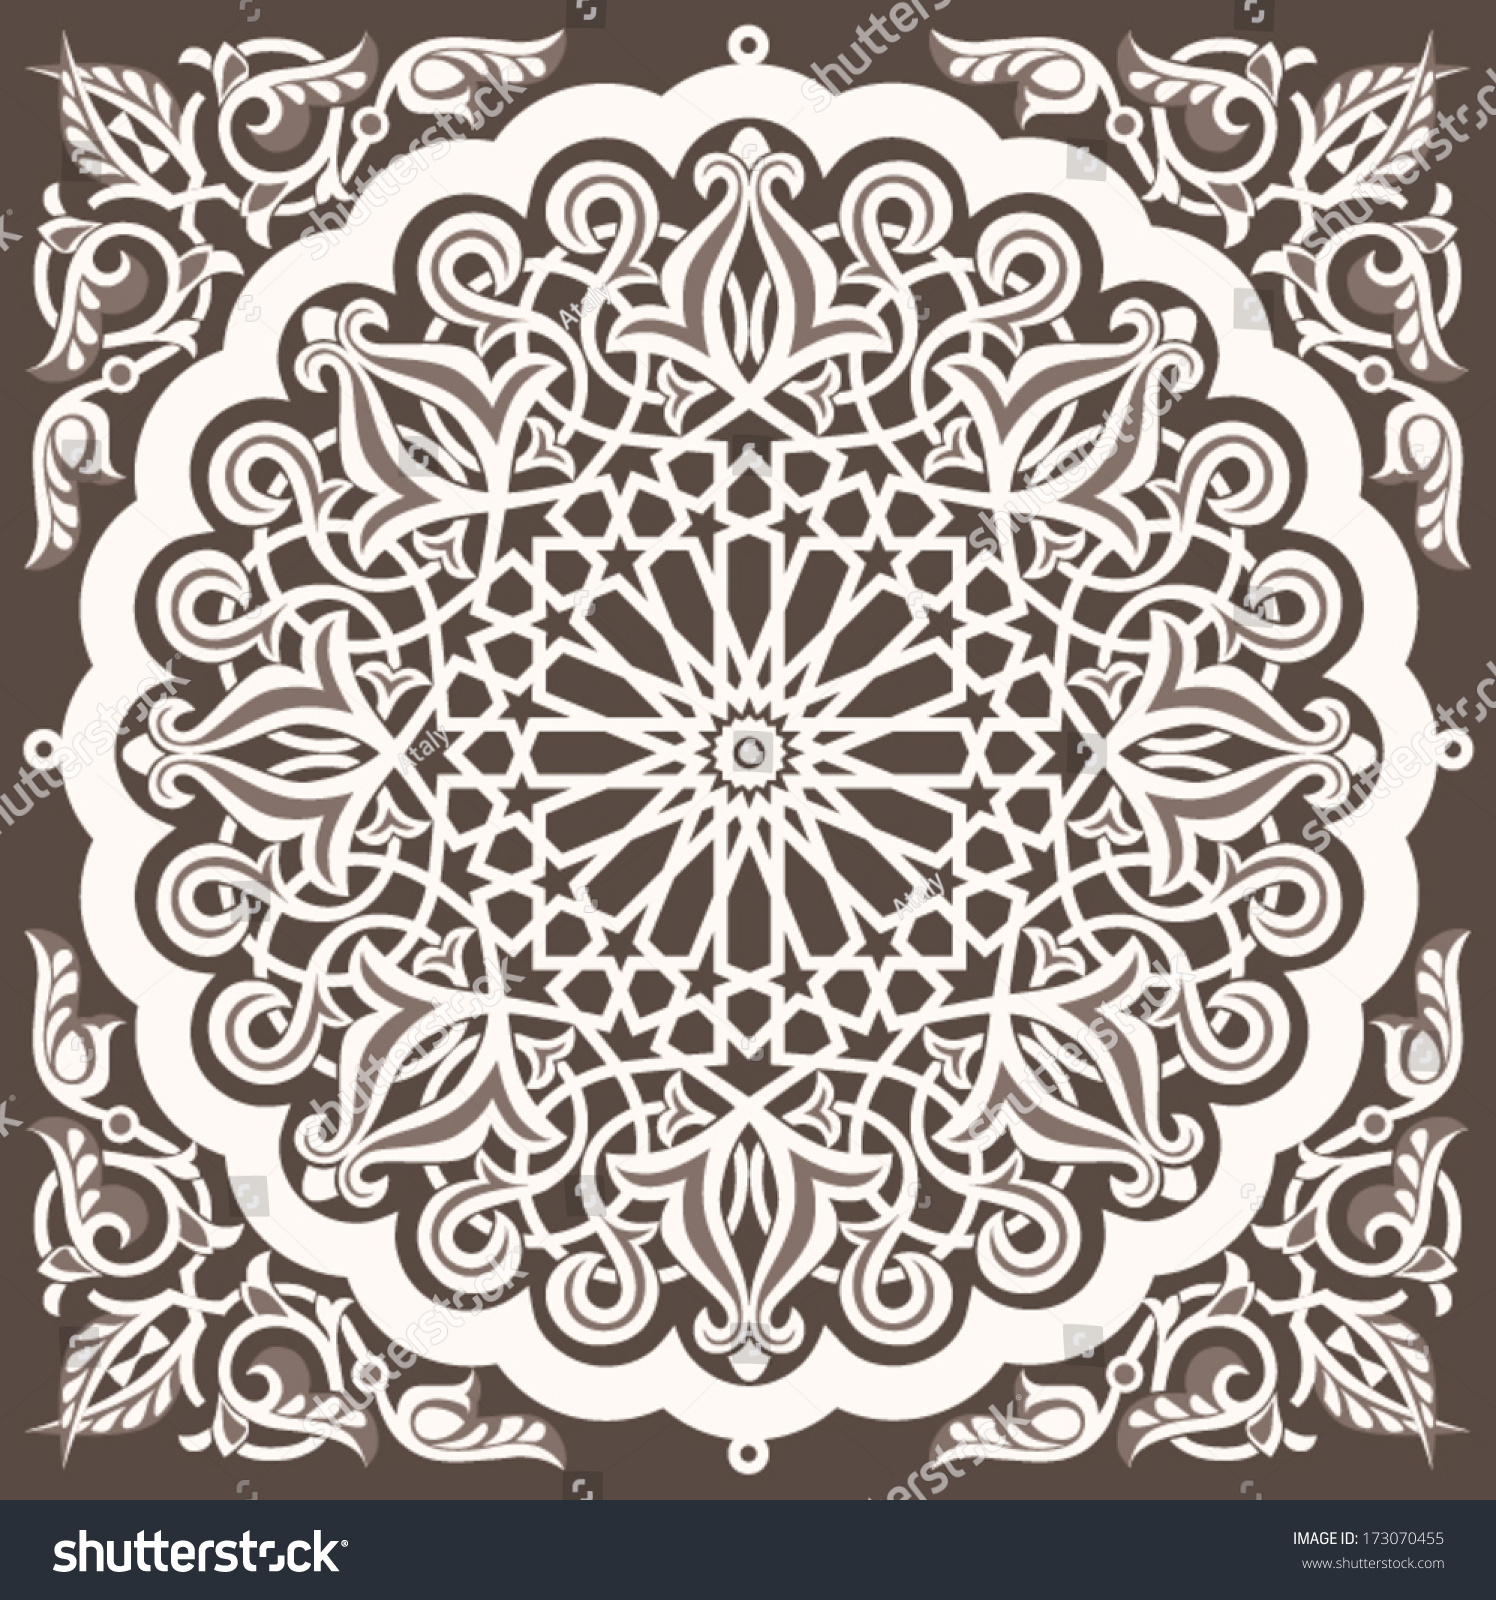 Arabic Vintage Seamless Ornament Background Design Stock Vector 173070455 Shutterstock